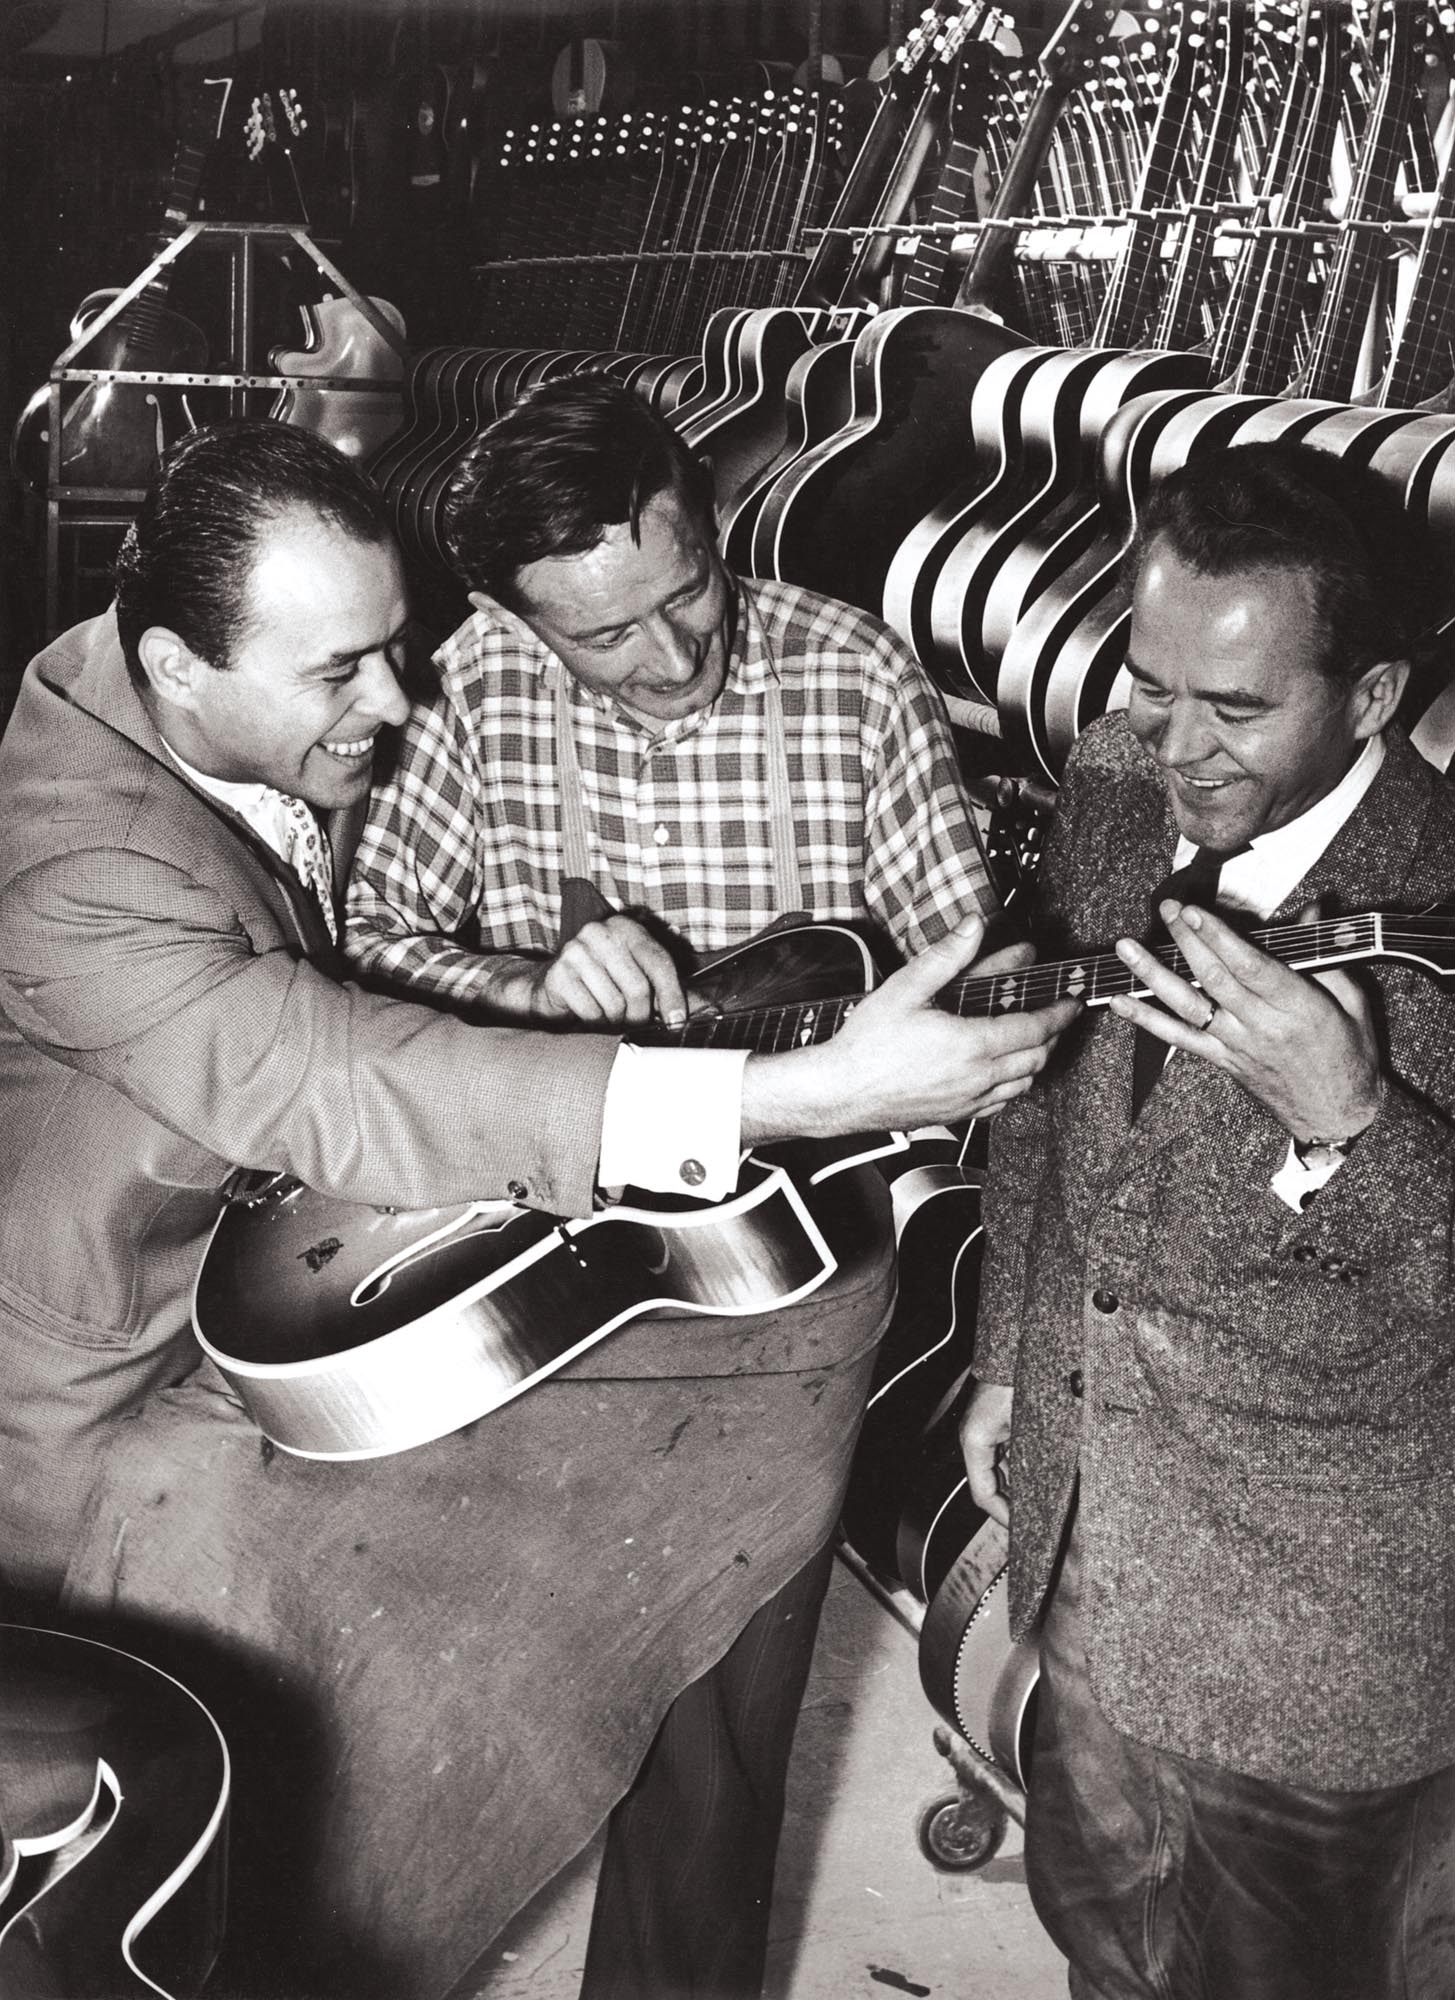 - Fred Wilfer (right) in his element: In 1958, a new guitars model was created with jazz icon Attila Zoller (left) and guitar builder Richard Müller (middle)